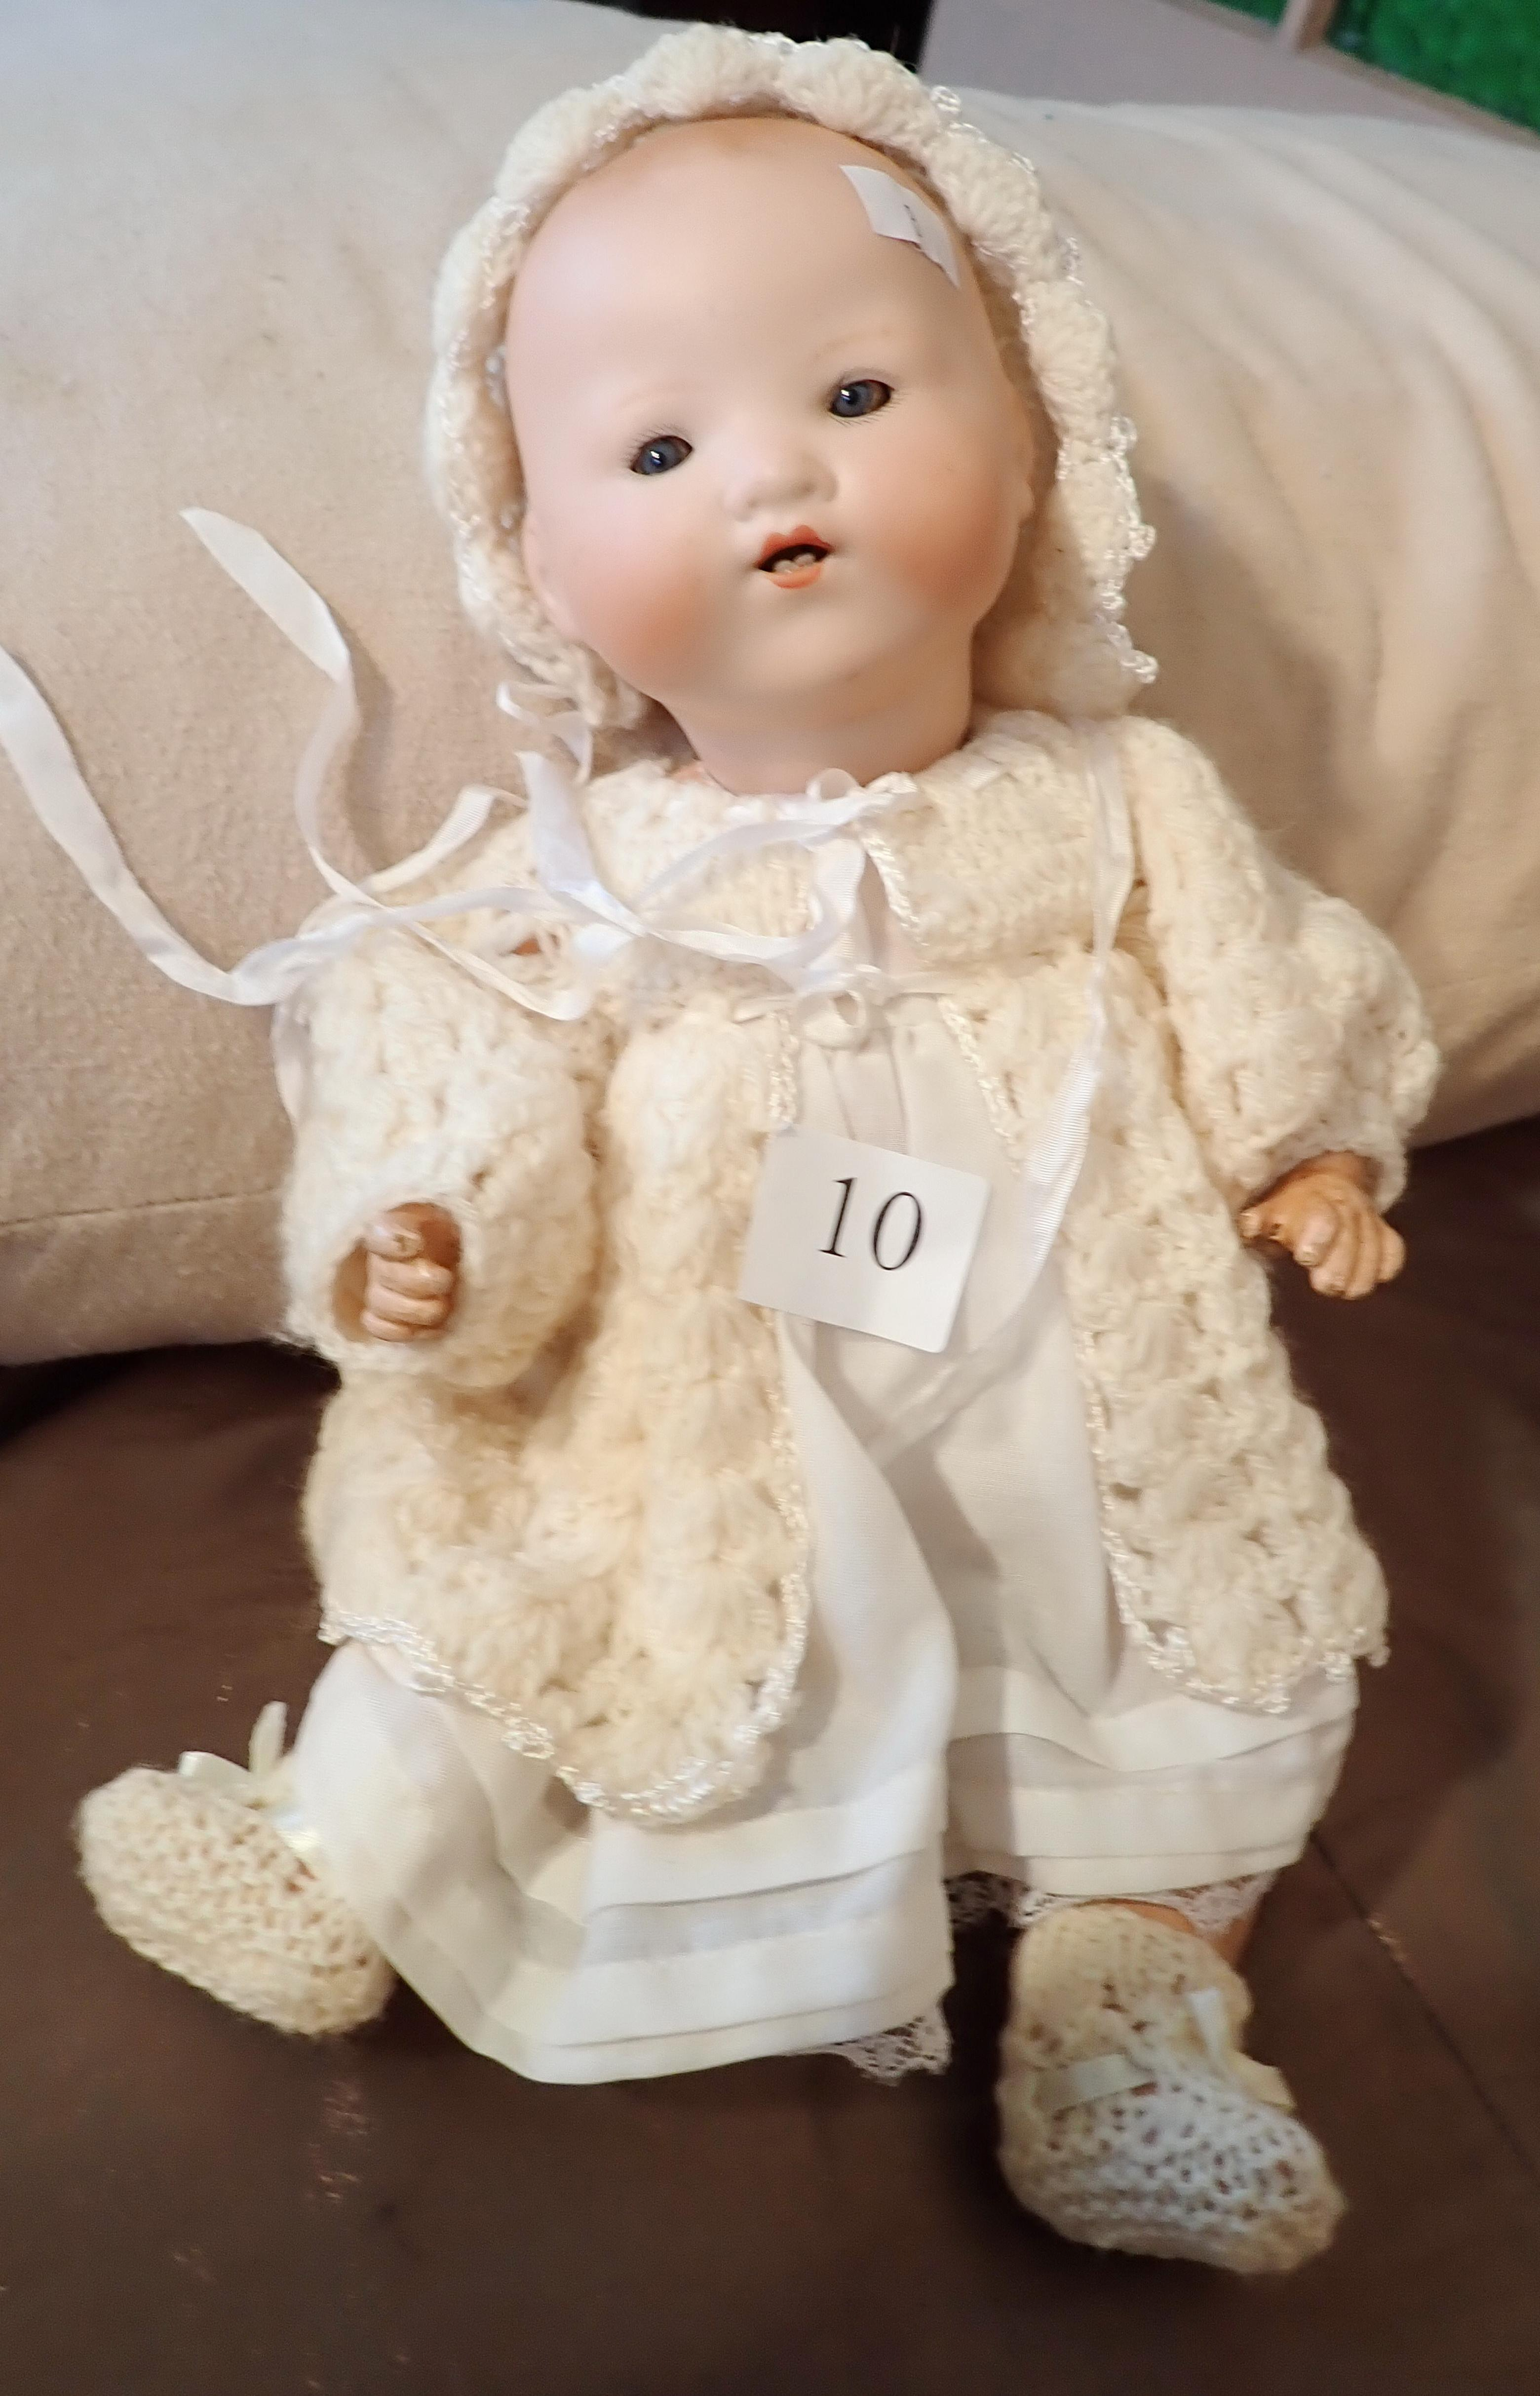 "11"" AM DOLL MARKED 51 IN CROCHETED DRESS, PETTICOAT & PANTALOONS, NEED RESTRINGING - BODY REPAINTED"